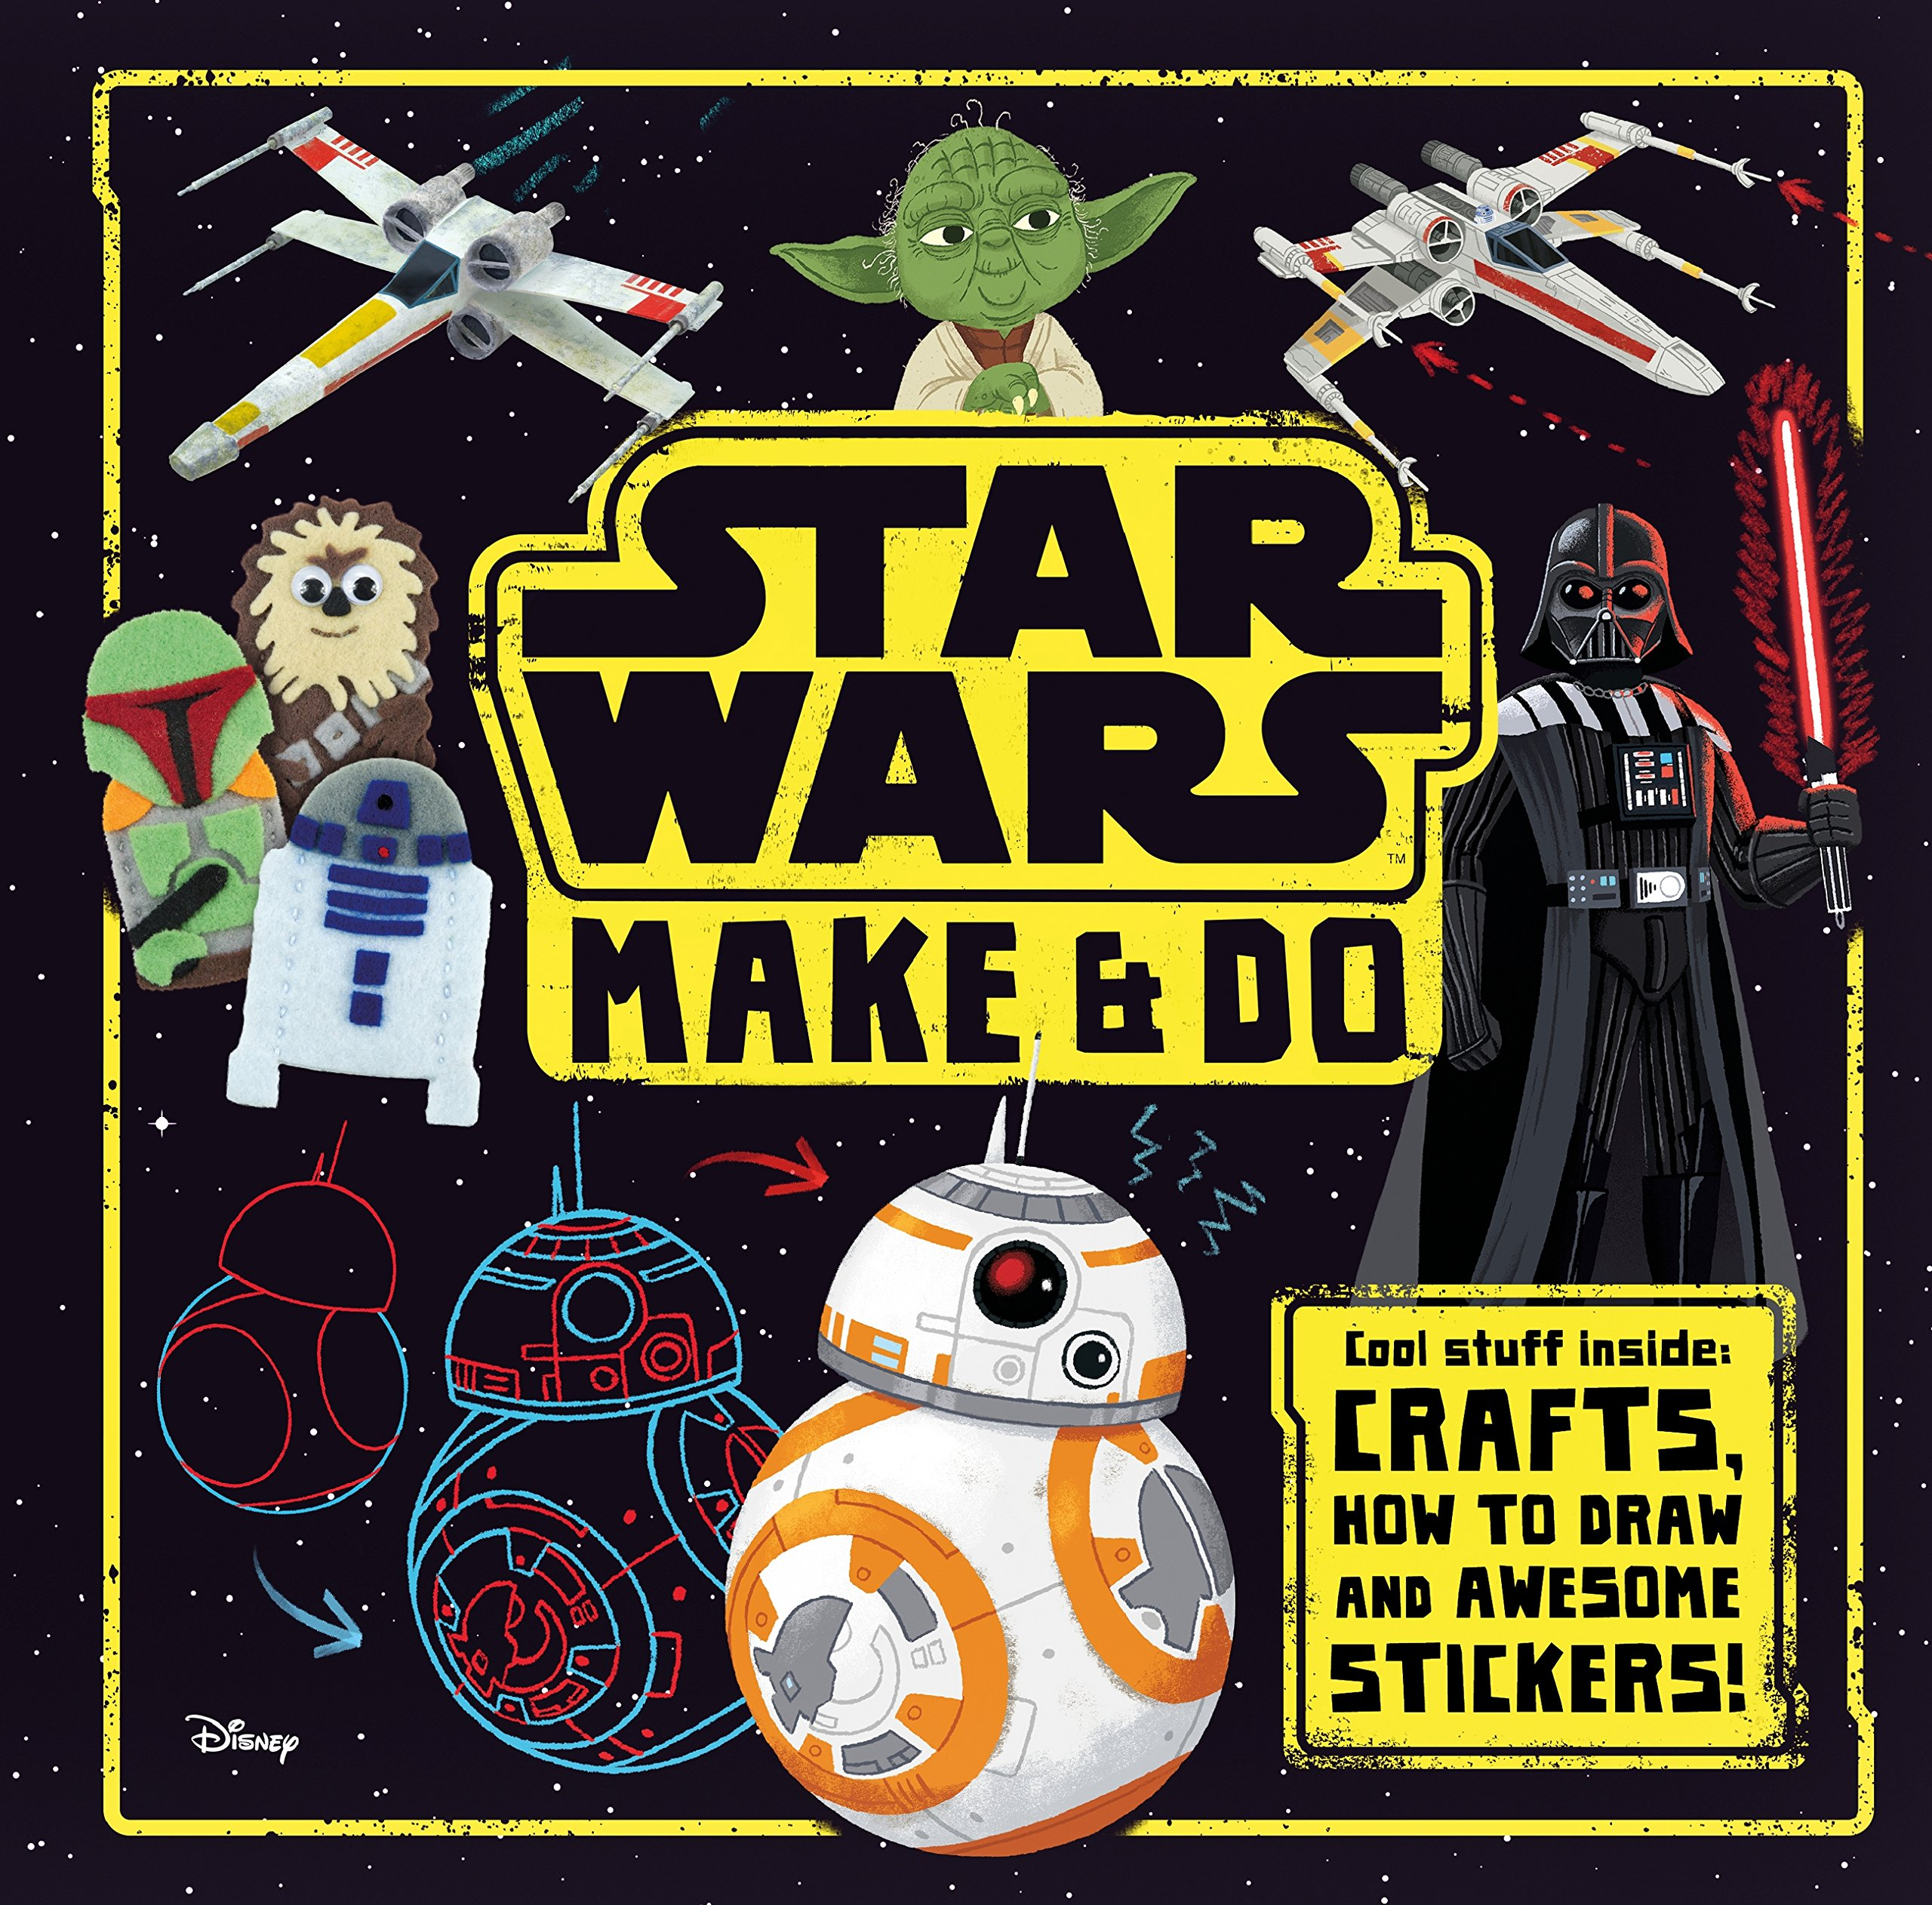 Star Wars: Make and Do